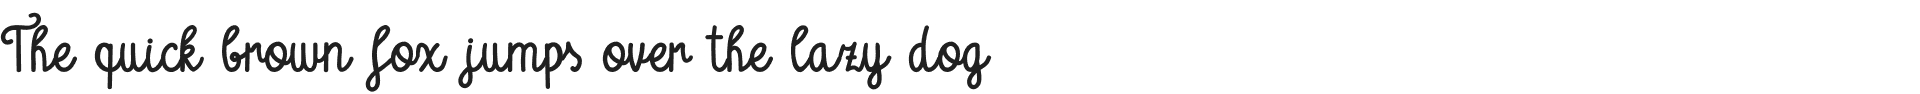 Beaming - A Script & Sans Font Duo - image.php?font=Beaming